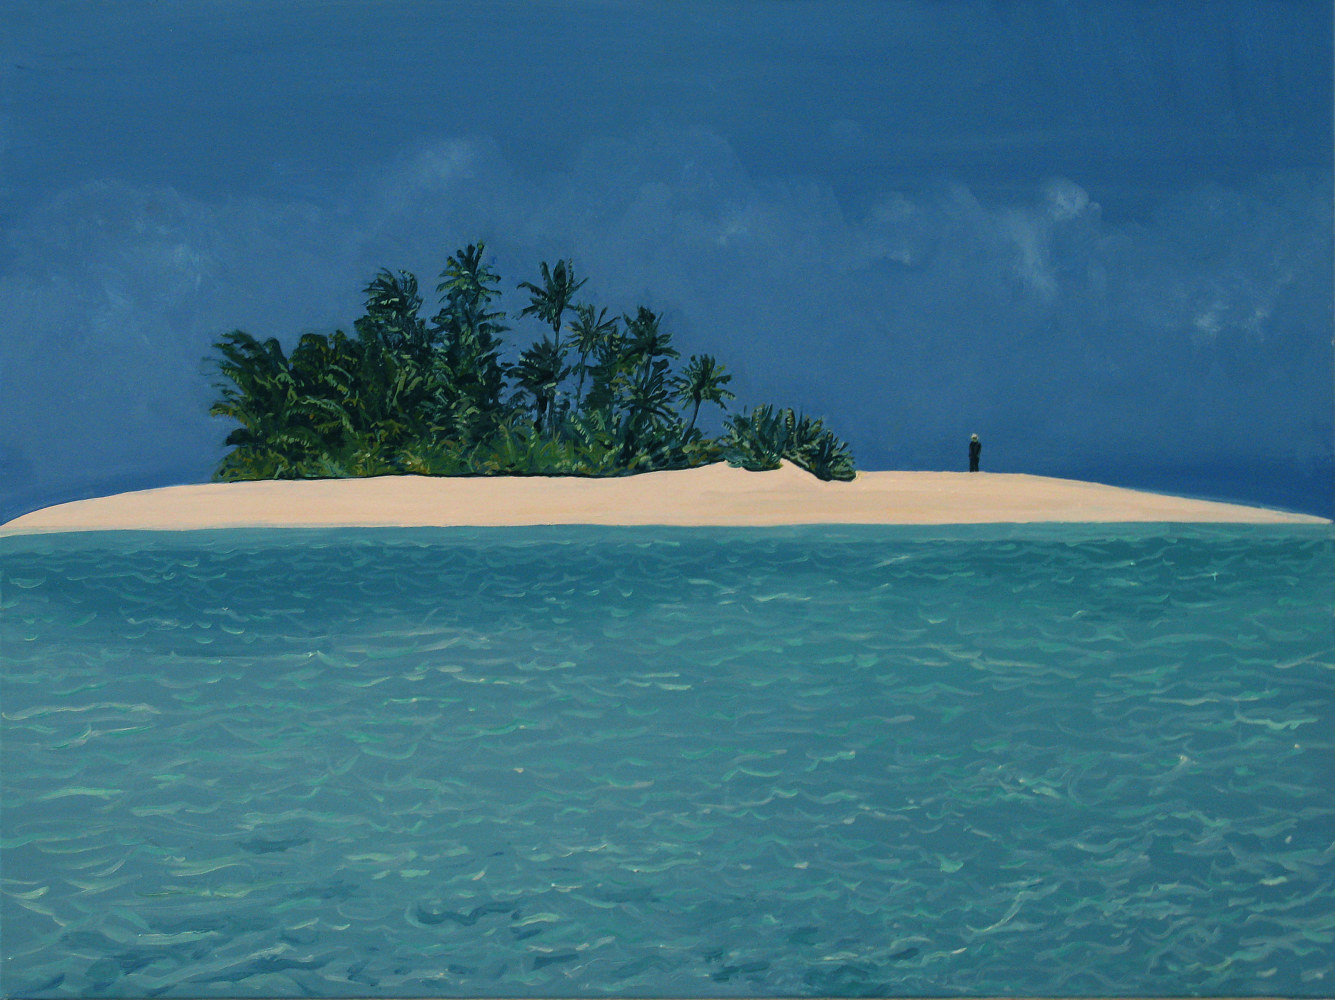 2008, Imagine Andy Warhol on a Desert Island, 30x40 inches, oil on canvas by David  Maxim